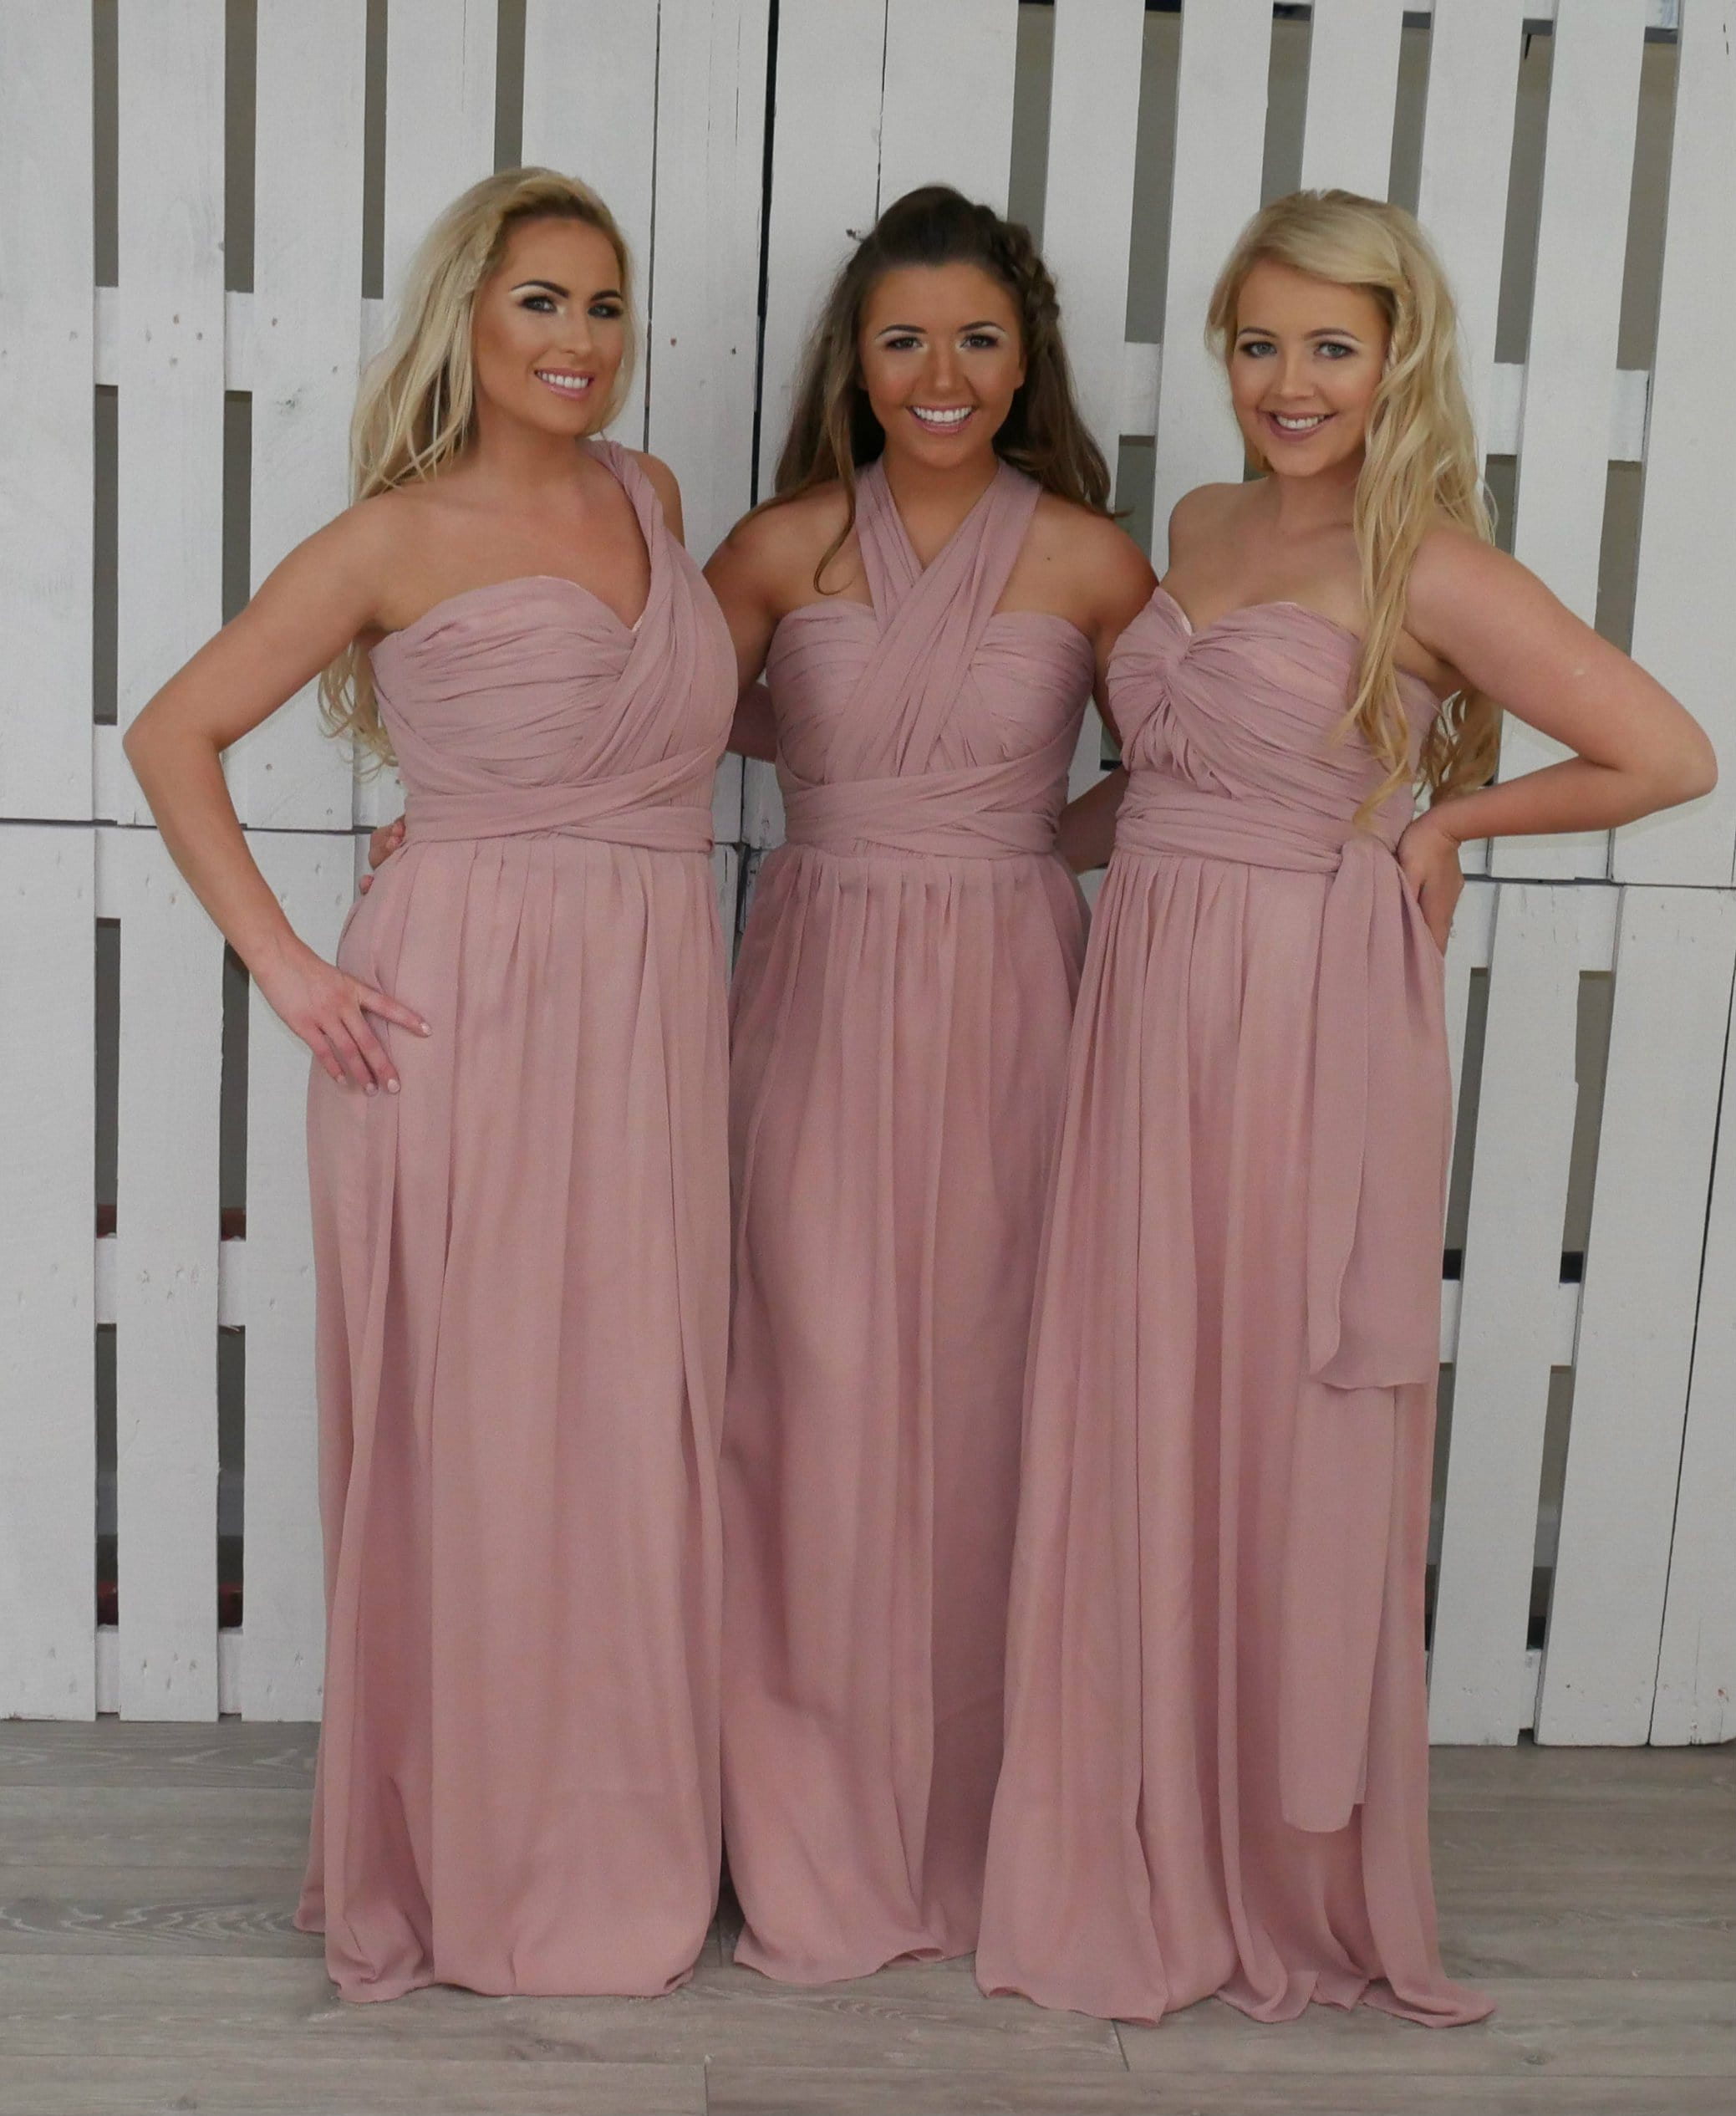 b6146d33a029 Blush Pink Bridesmaid Dresses Multiway - Aztec Stone and Reclamations